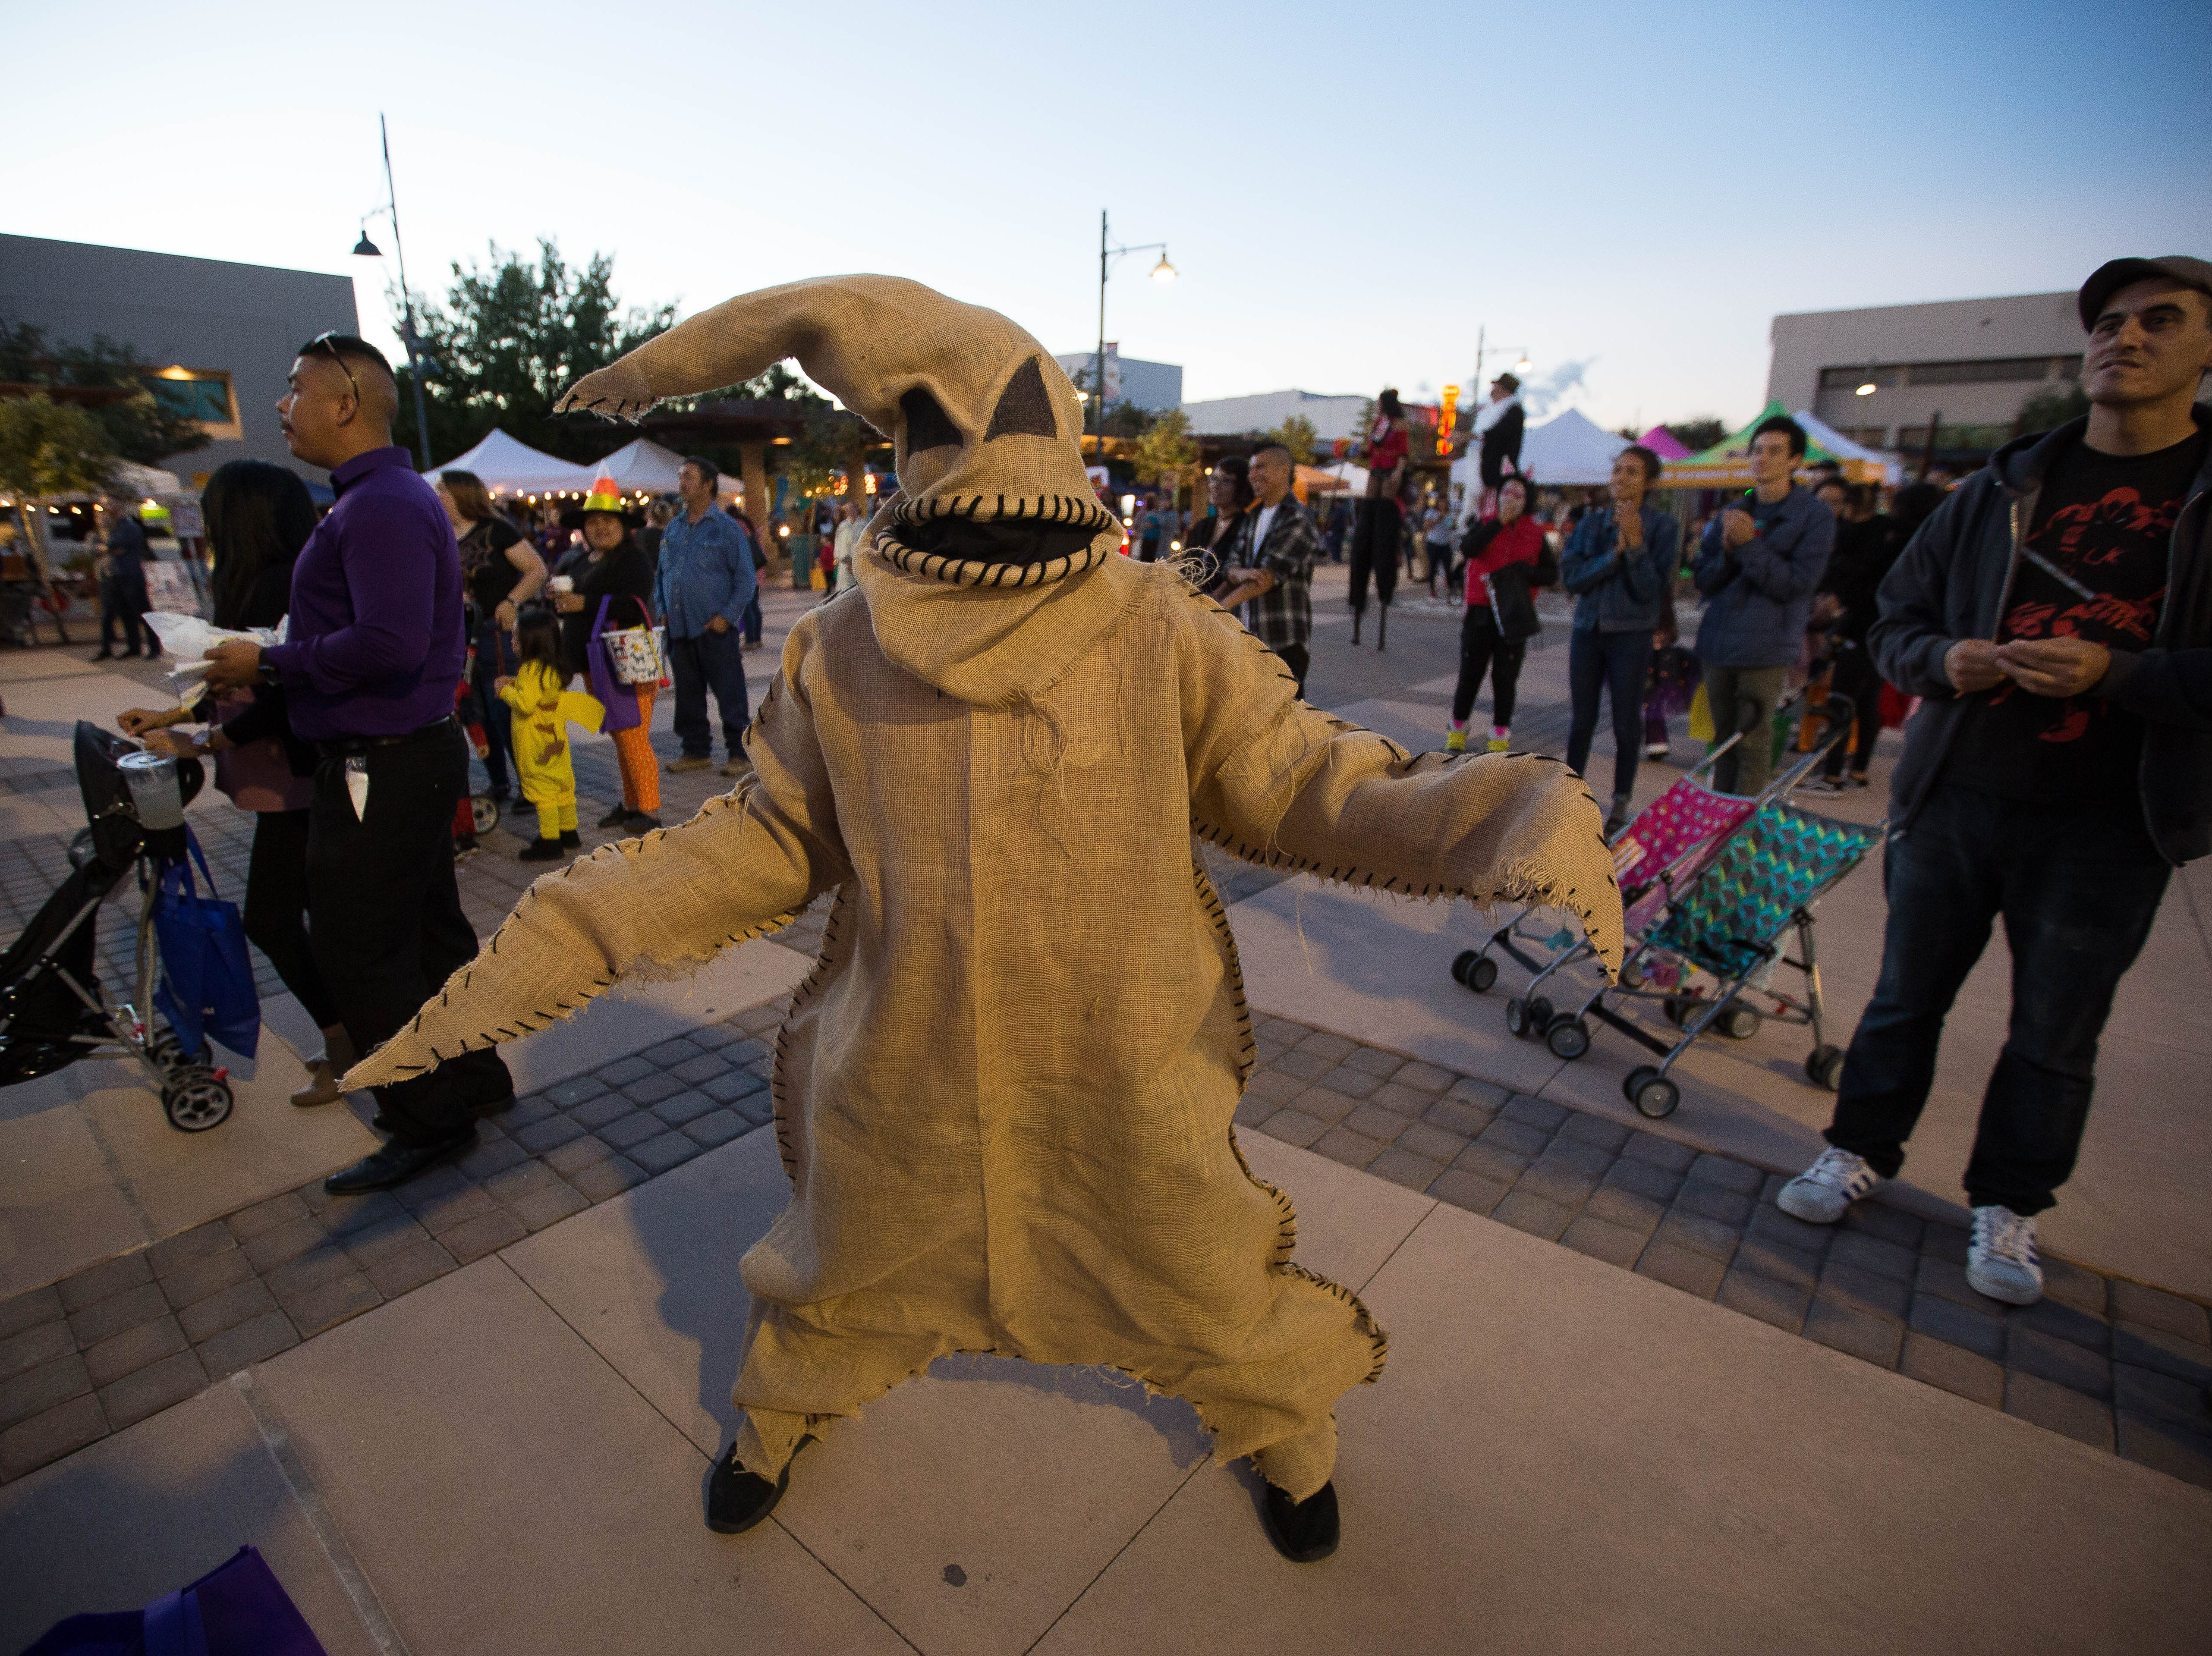 Patrick Martinez, dressed as Oogie Boogie from Nightmare before Christmas, waits for the adult costume contest to start at the Farmers Market Fall Festival, Wednesday October 24, 2018.